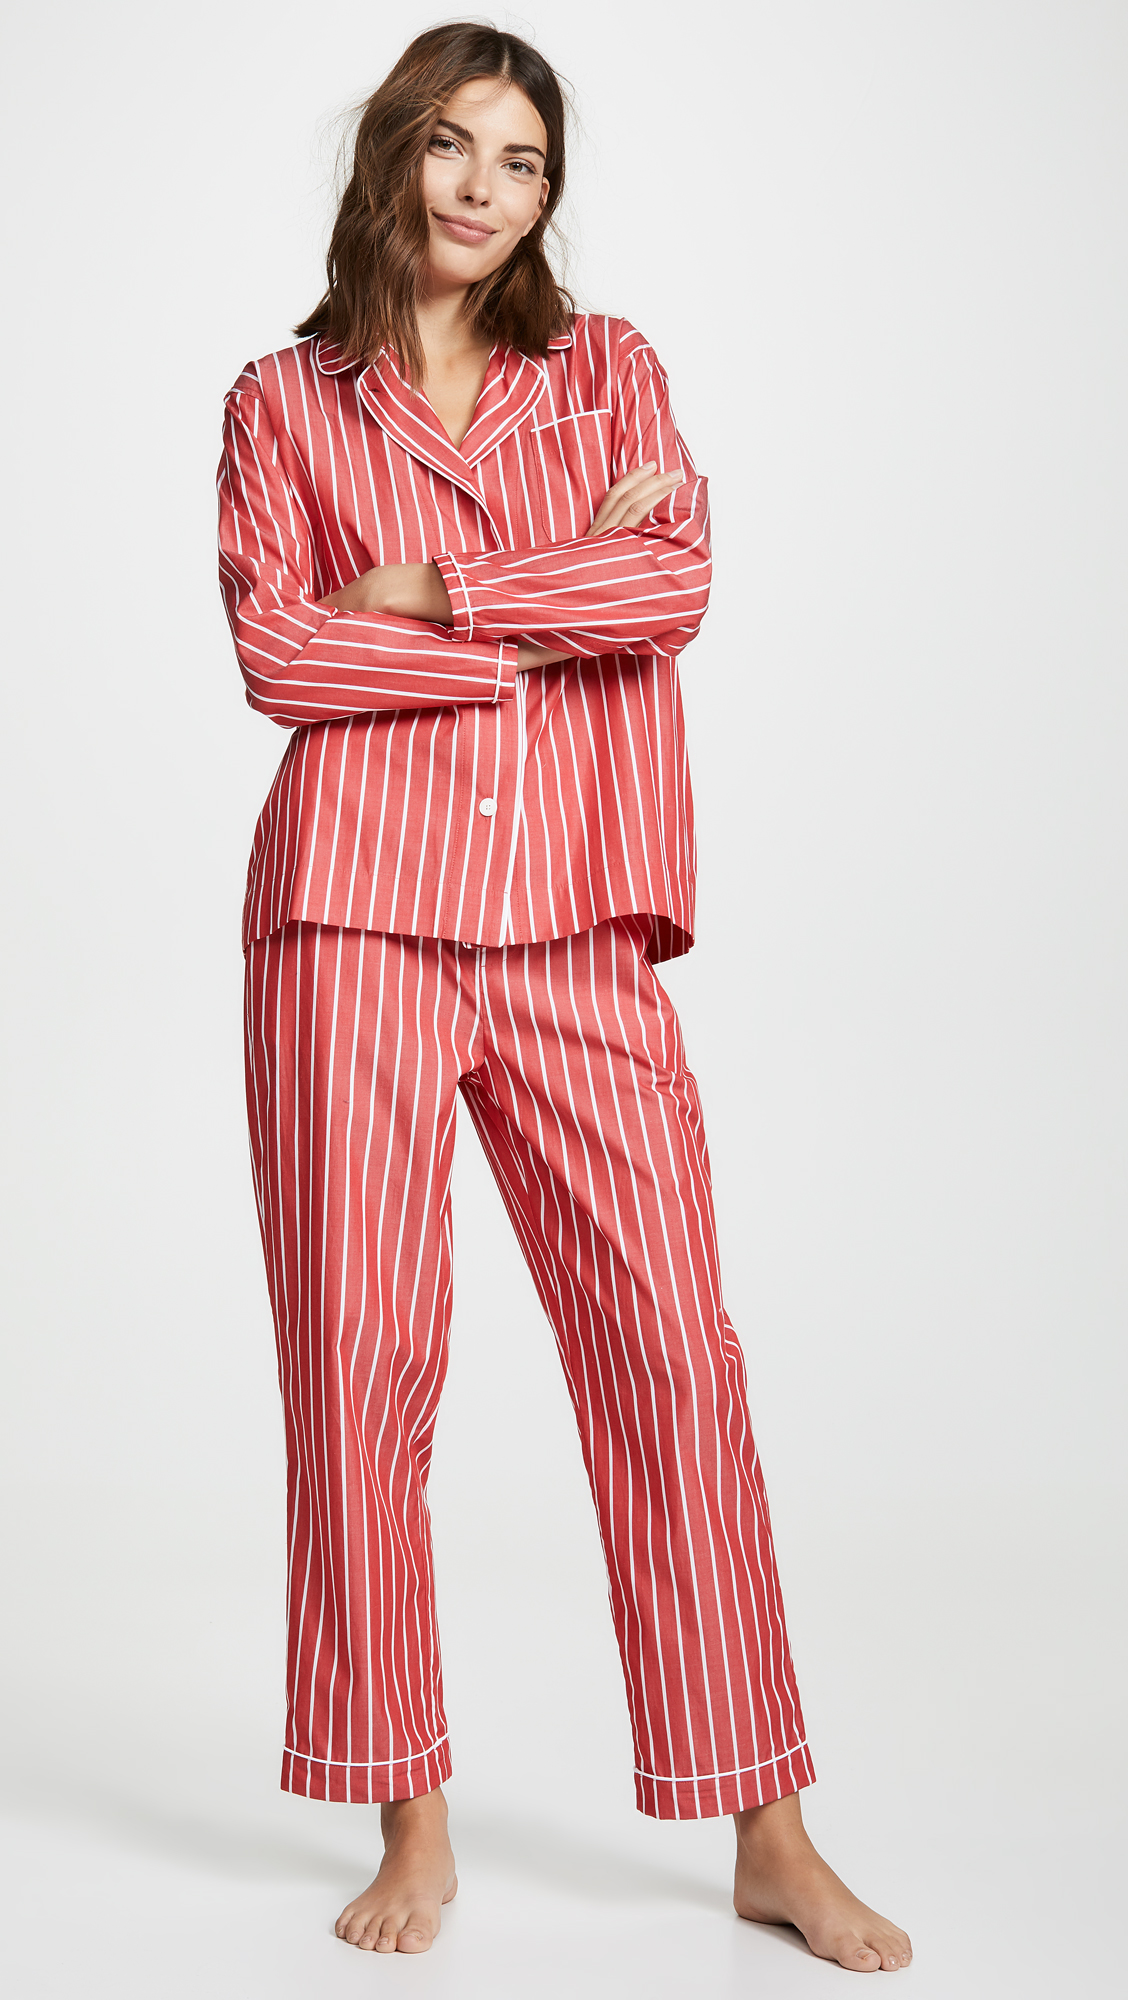 sleepy jones red white stripe pajama set